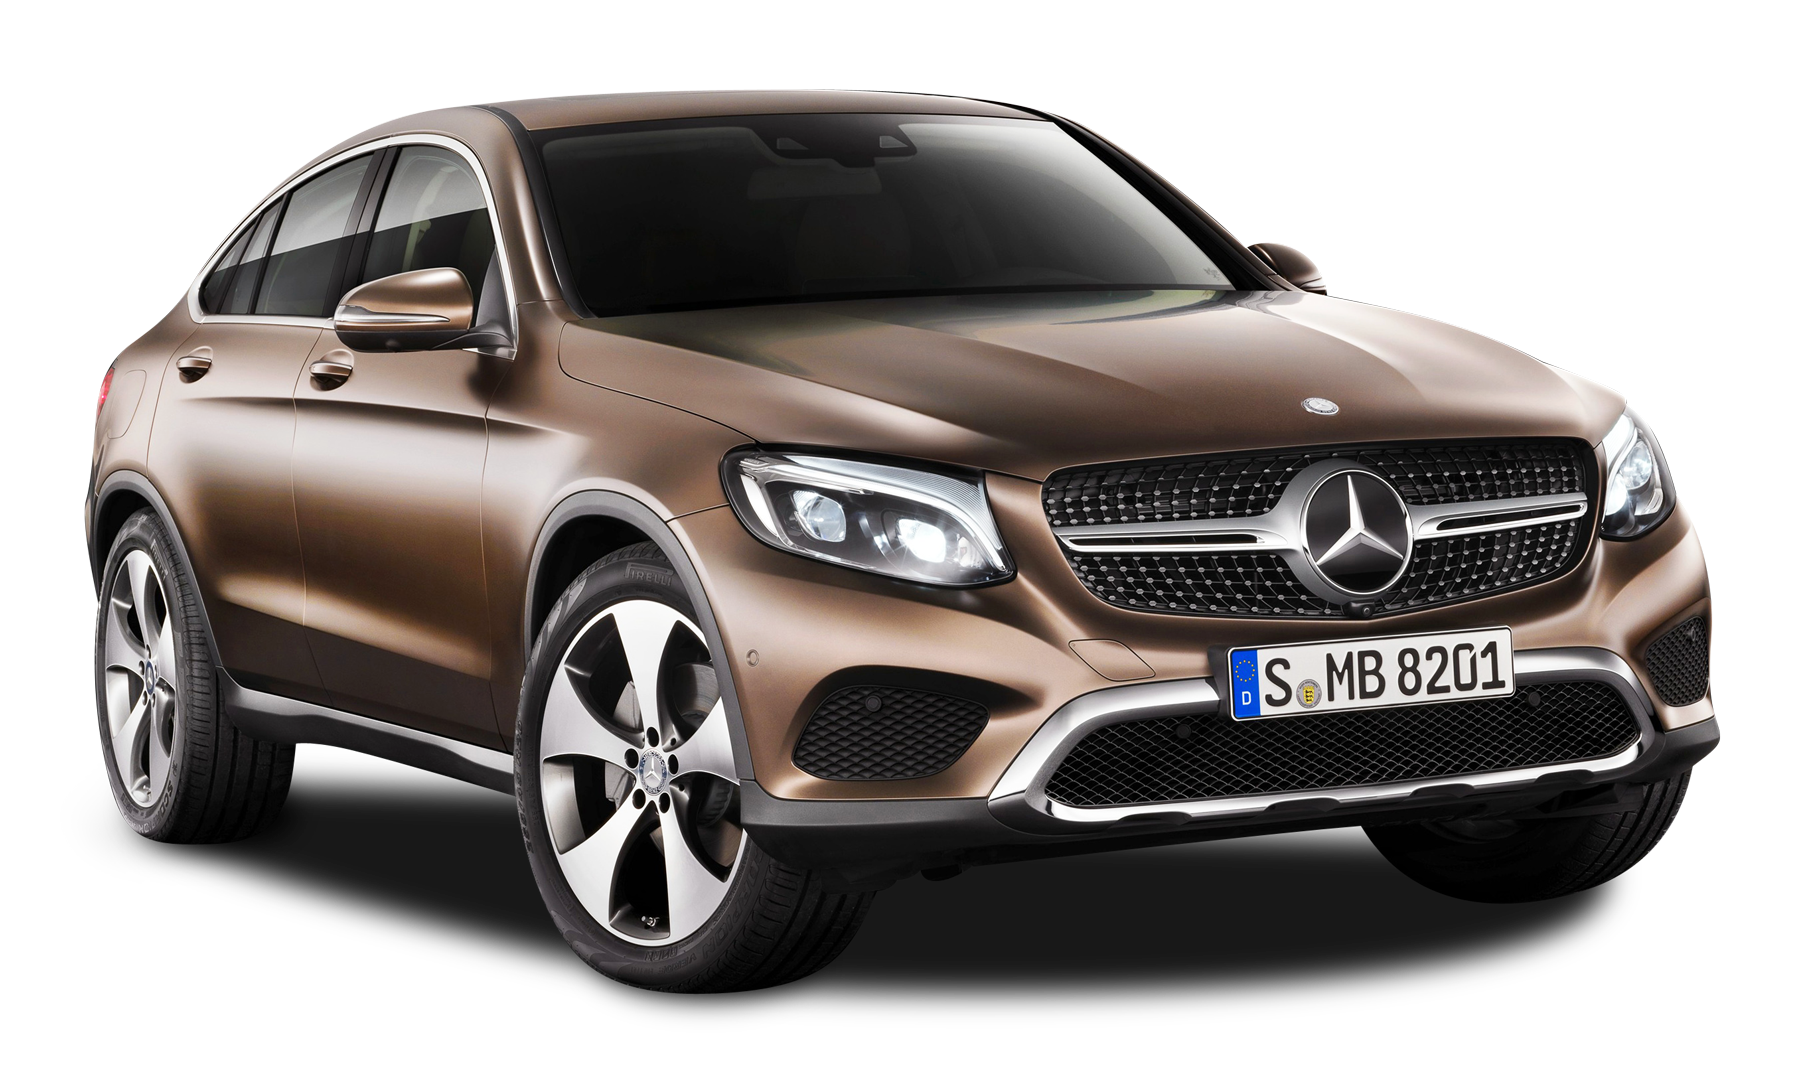 Luxury Vehicle: Brown Mercedes Benz GLE Coupe Car PNG Image